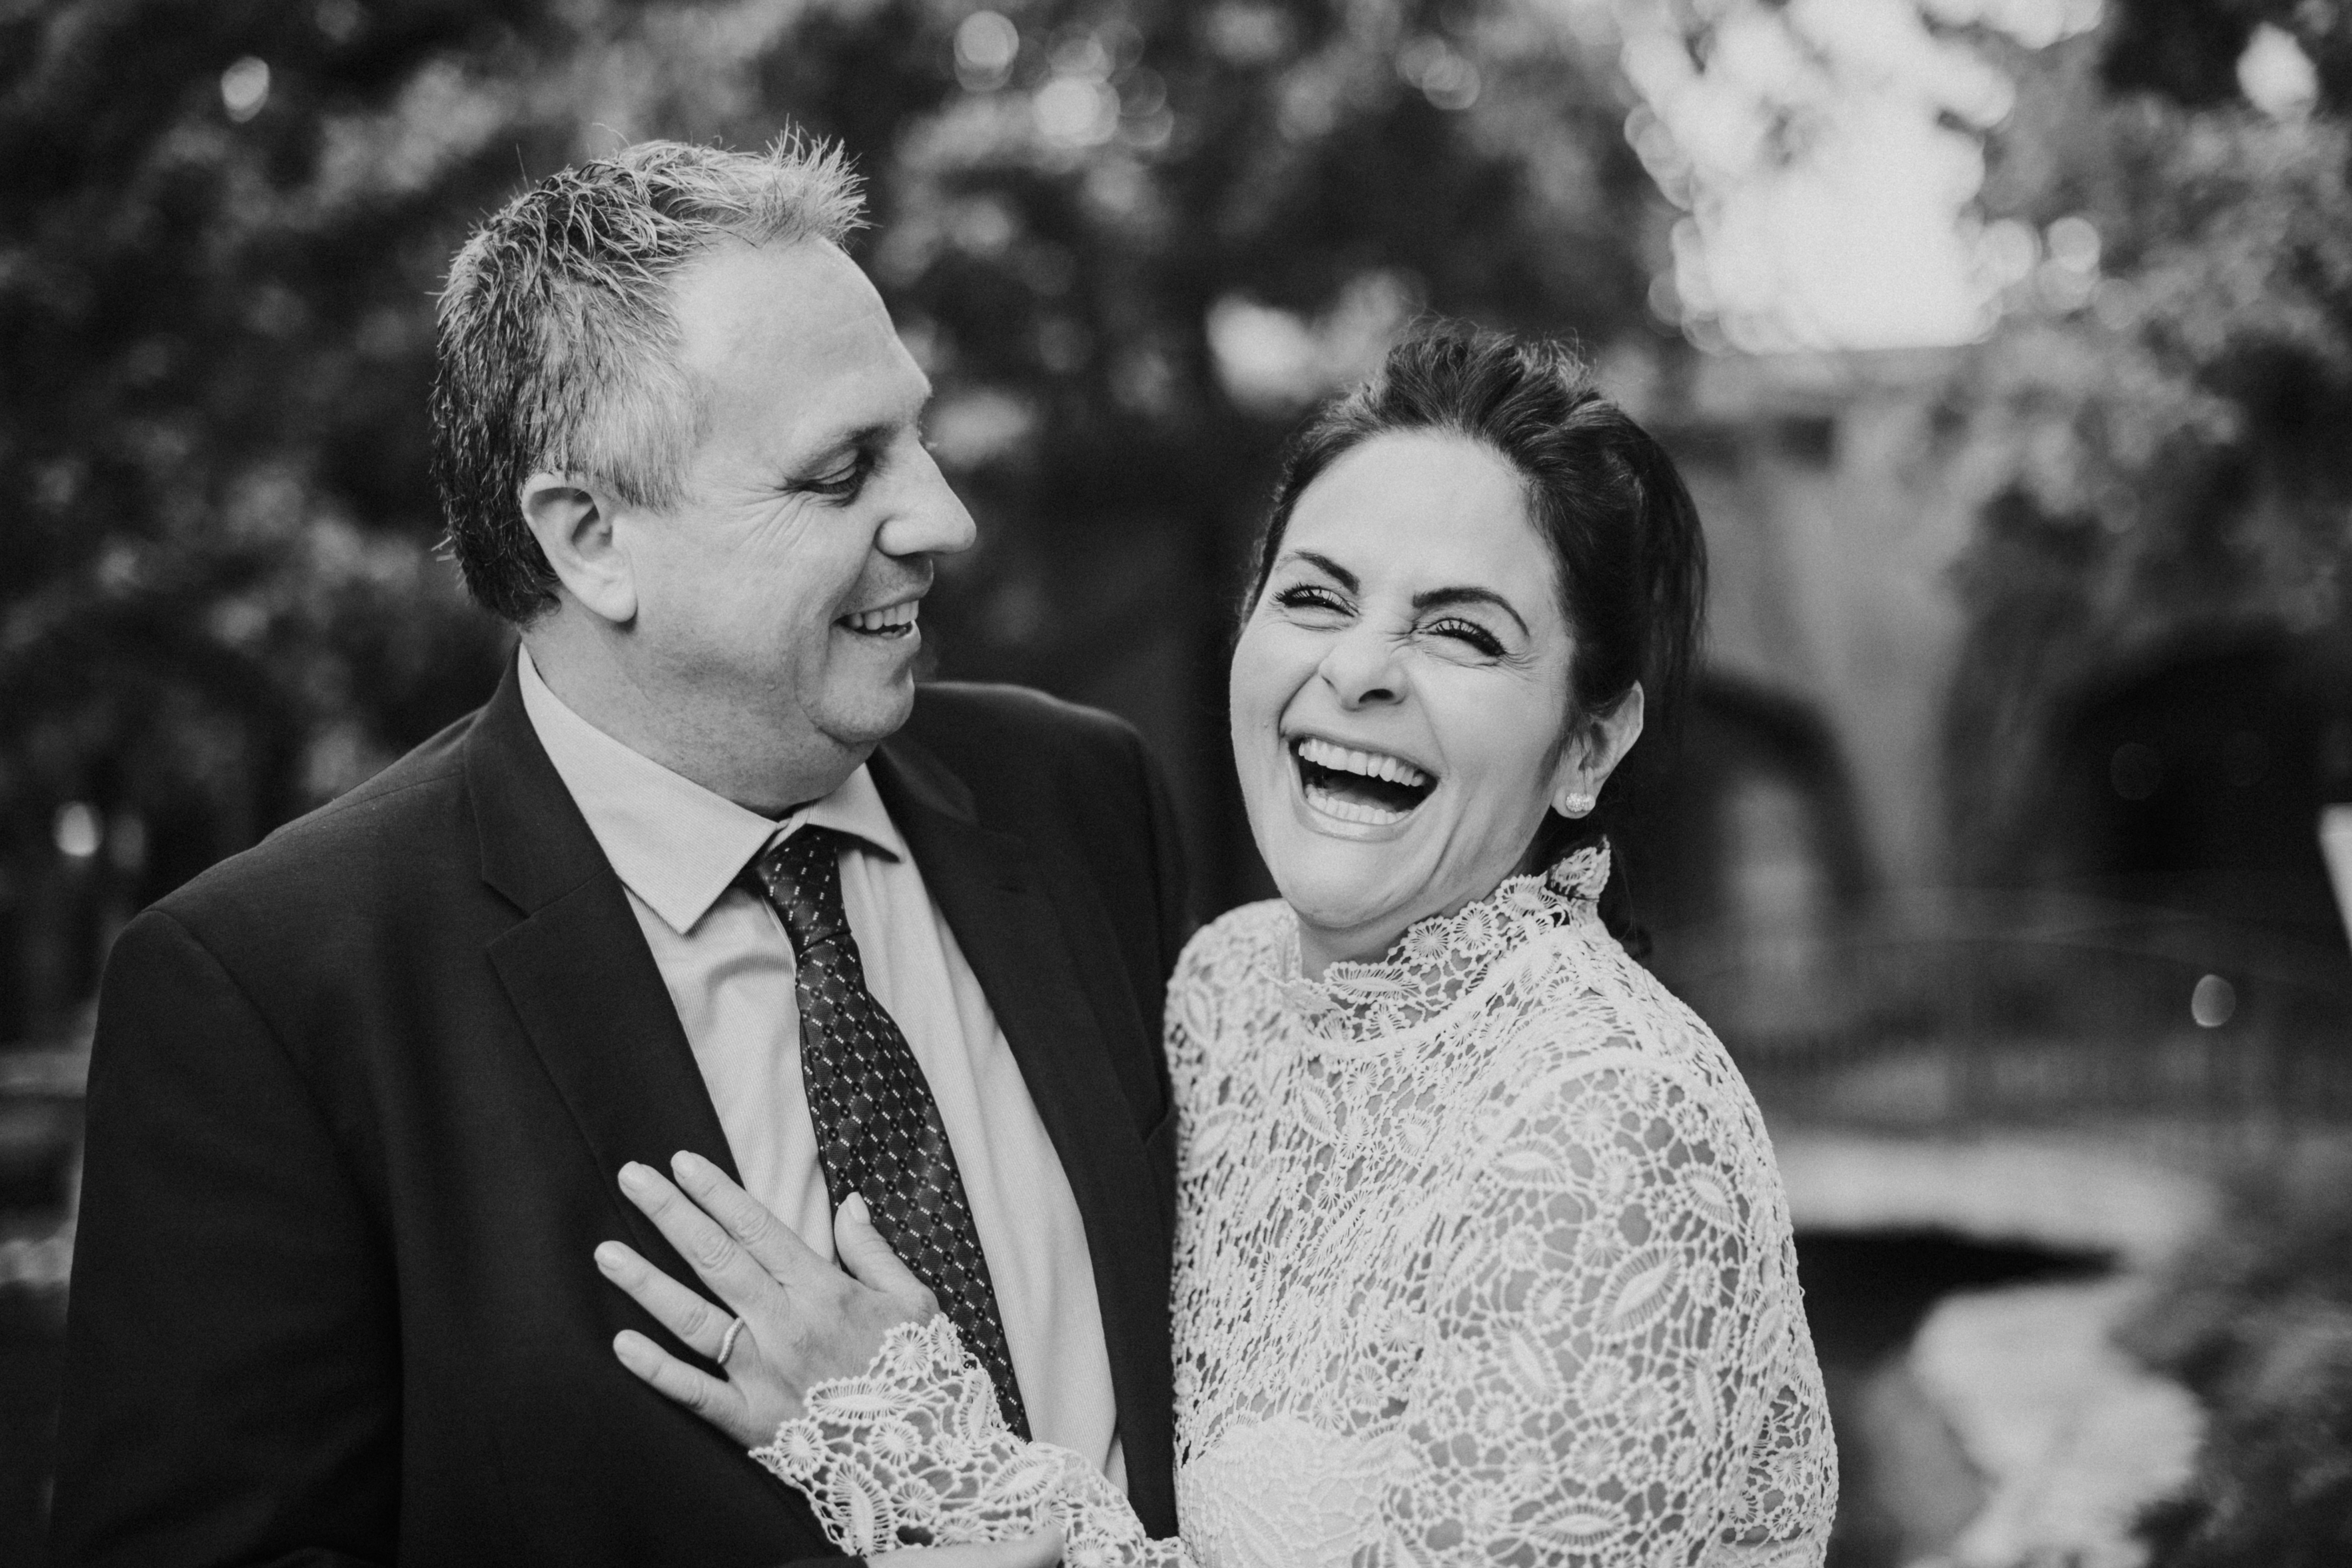 bride and groom laughing candid wedding day photography at the langham pasadena california